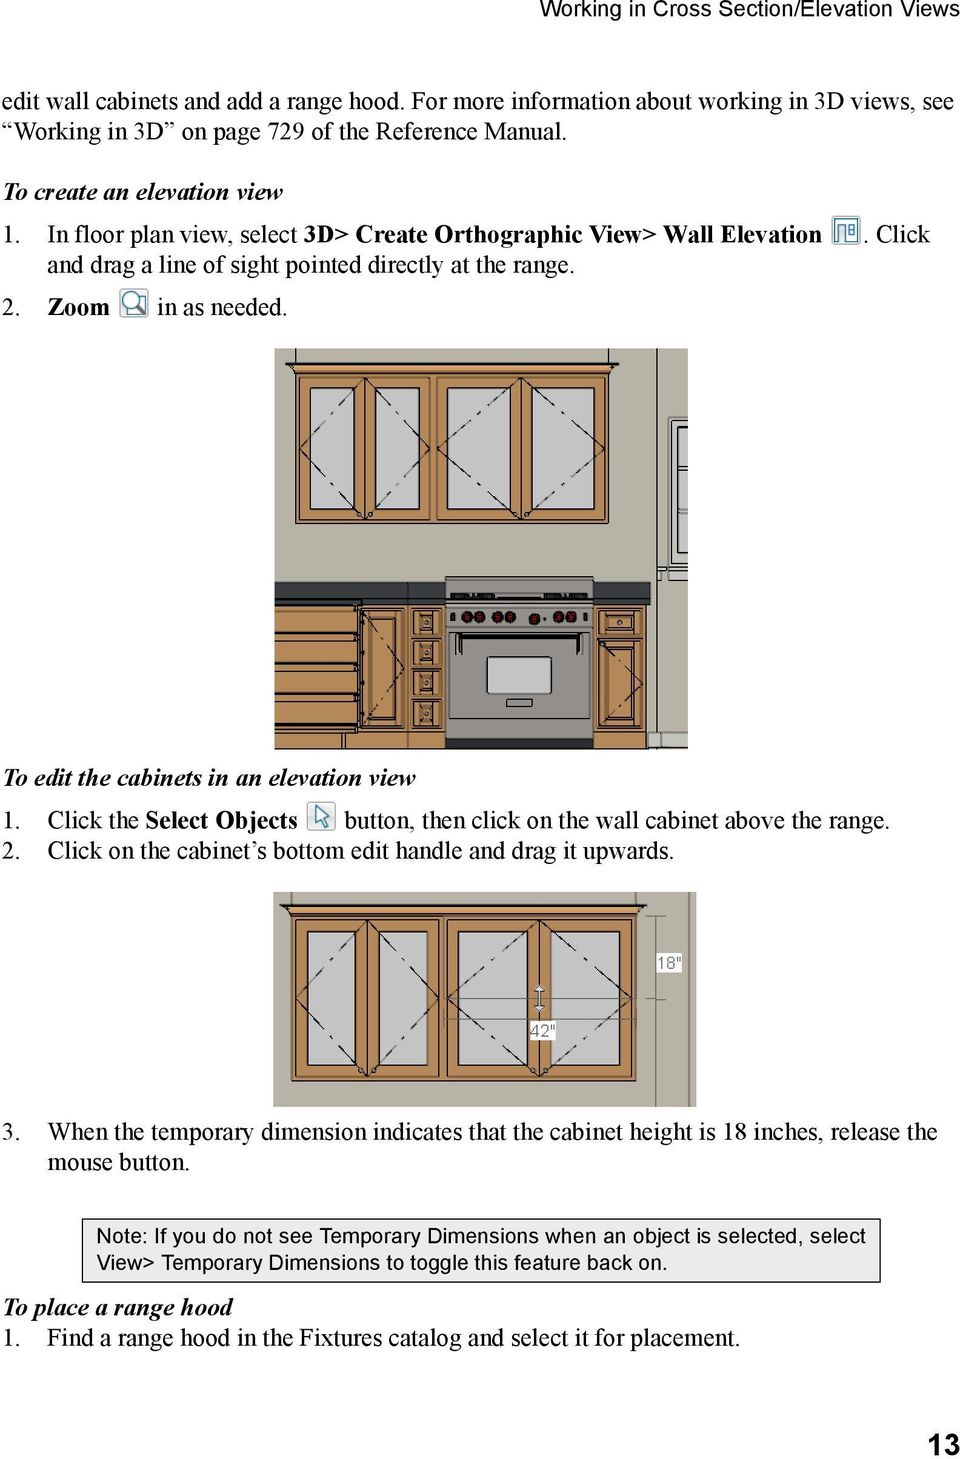 To edit the cabinets in an elevation view 1. Click the Select Objects button, then click on the wall cabinet above the range. 2. Click on the cabinet s bottom edit handle and drag it upwards. 3.